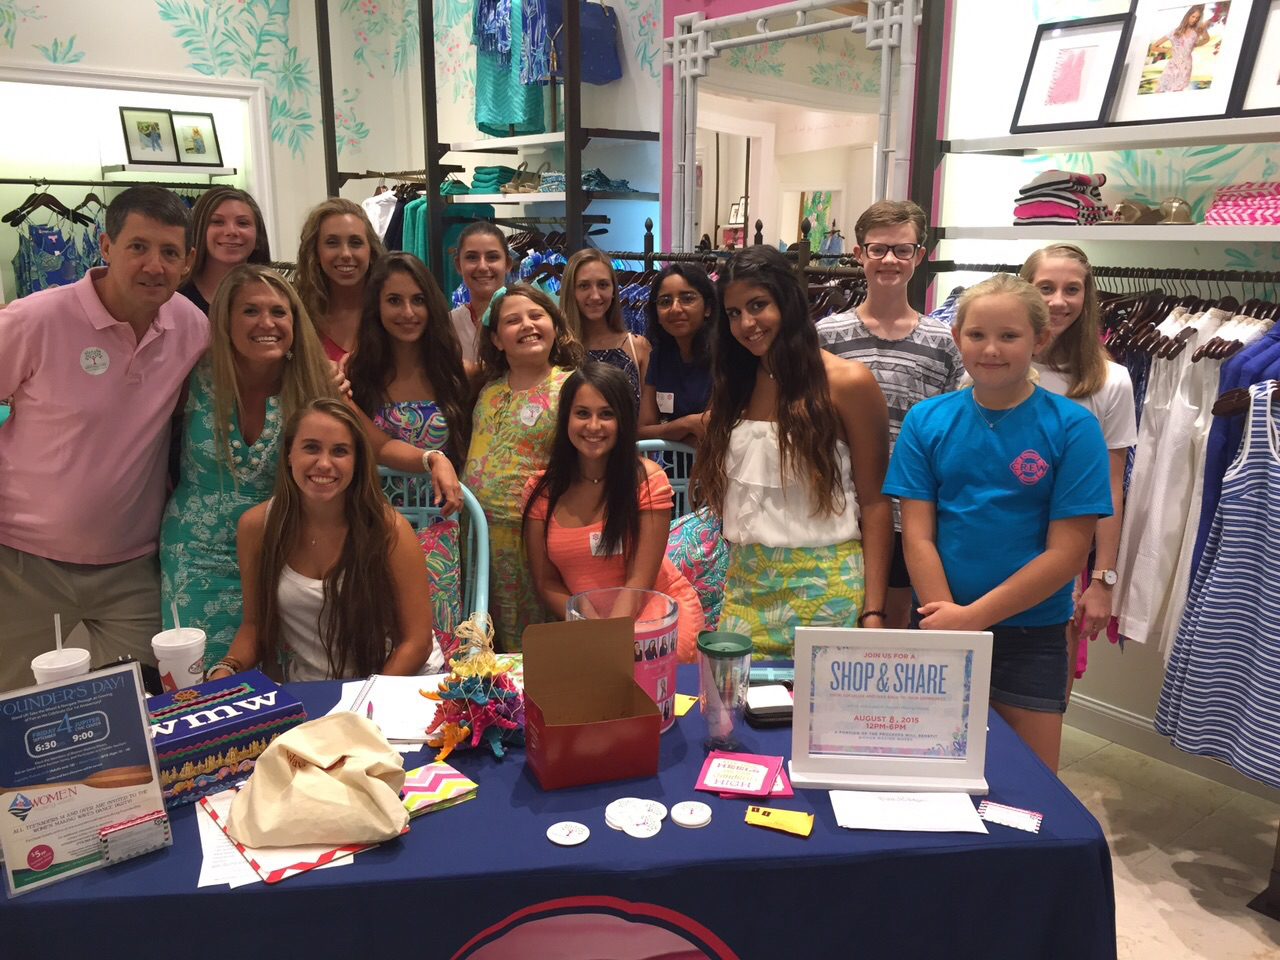 Try This On For Size—Stand UP For MySize Event Taking Place At Lilly Pulitzer Store At Gardens Mall